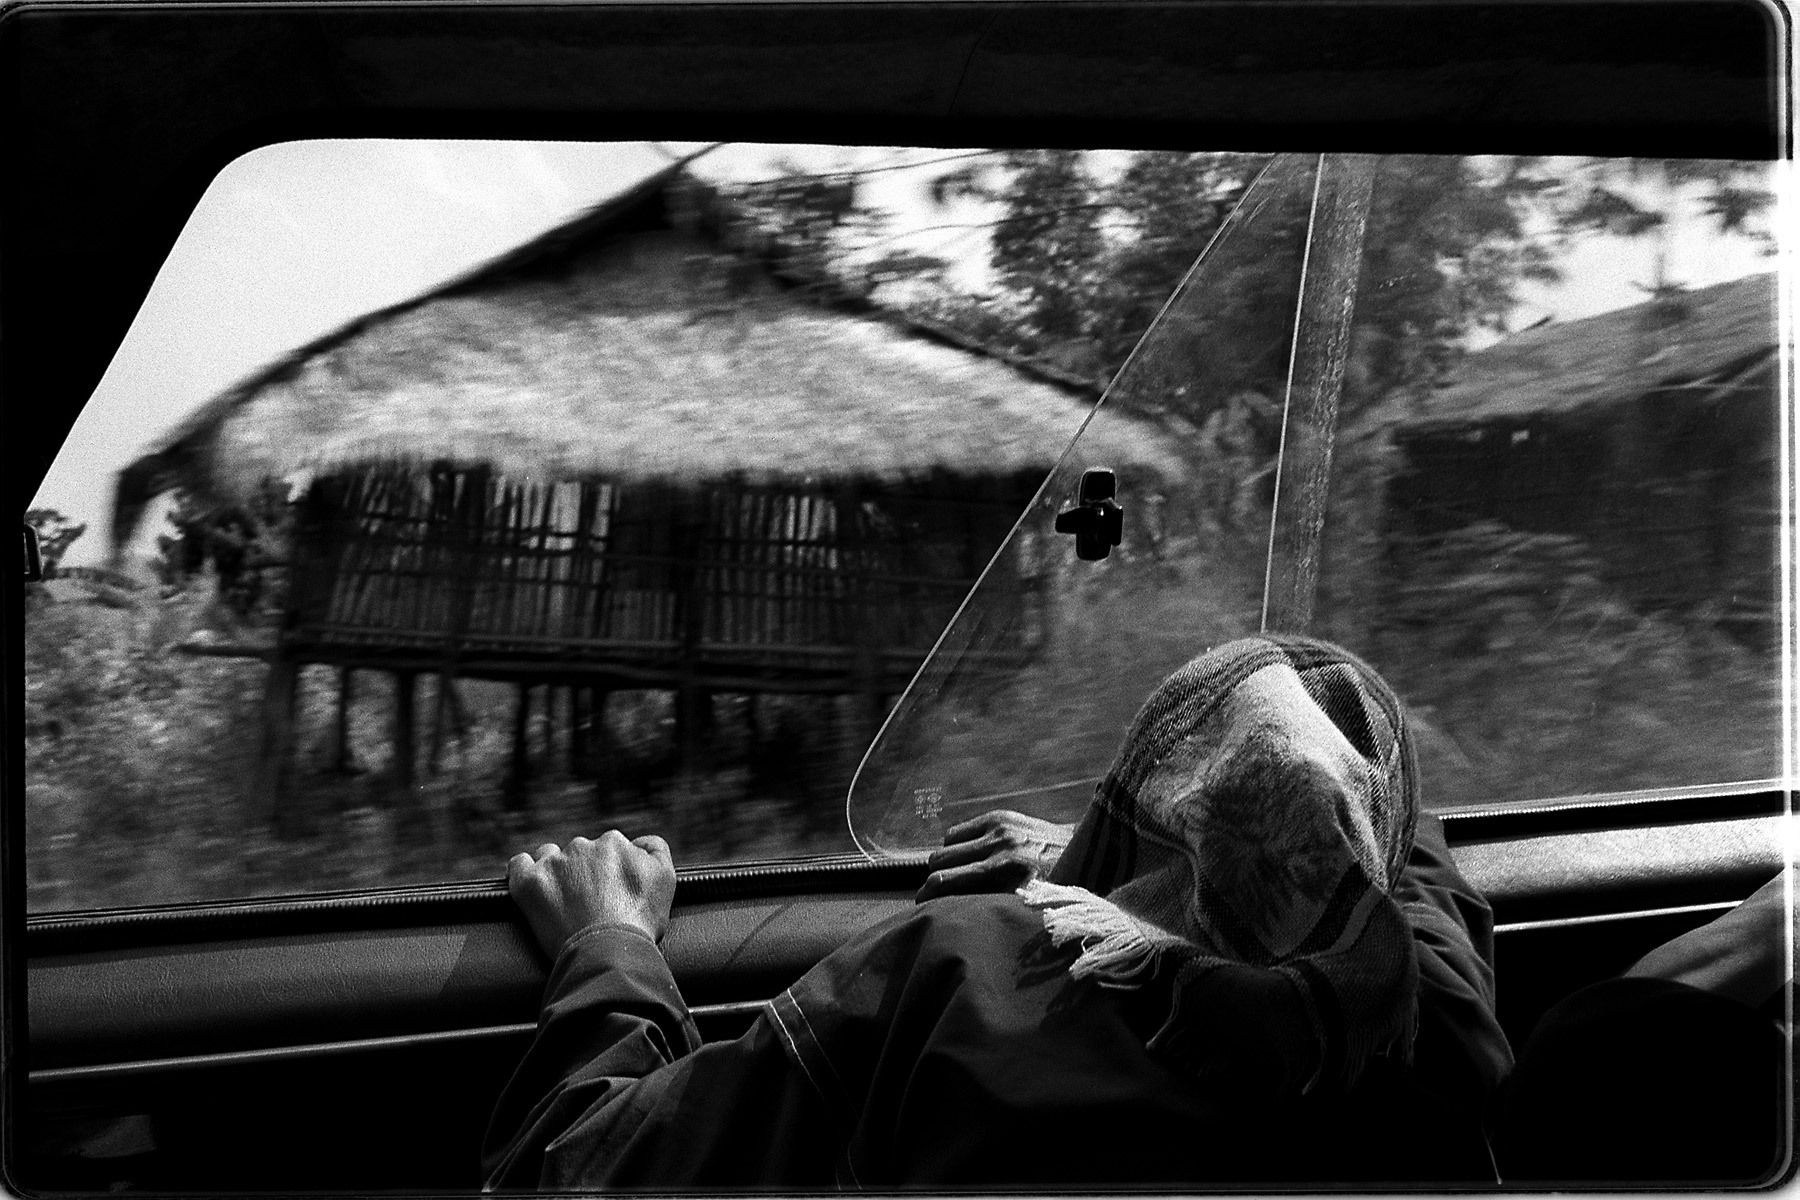 Tucked in Thailand's northern border, Maesalong is a place of contrasts. It's a freedom mecca from it's oppressive neighbors in China, Laos and Burma. Caught between are the Akha tribal people who have been forced from their nomadic tradition because of politics and strict borders. This photo: Ahbu travels in the back of a truck from her home in Maesalong, Thailand to Chiang Rei to receive treatments for her opium addiction. Having ridden in an automobile only once in her life, the hour-long journey has made her sick.